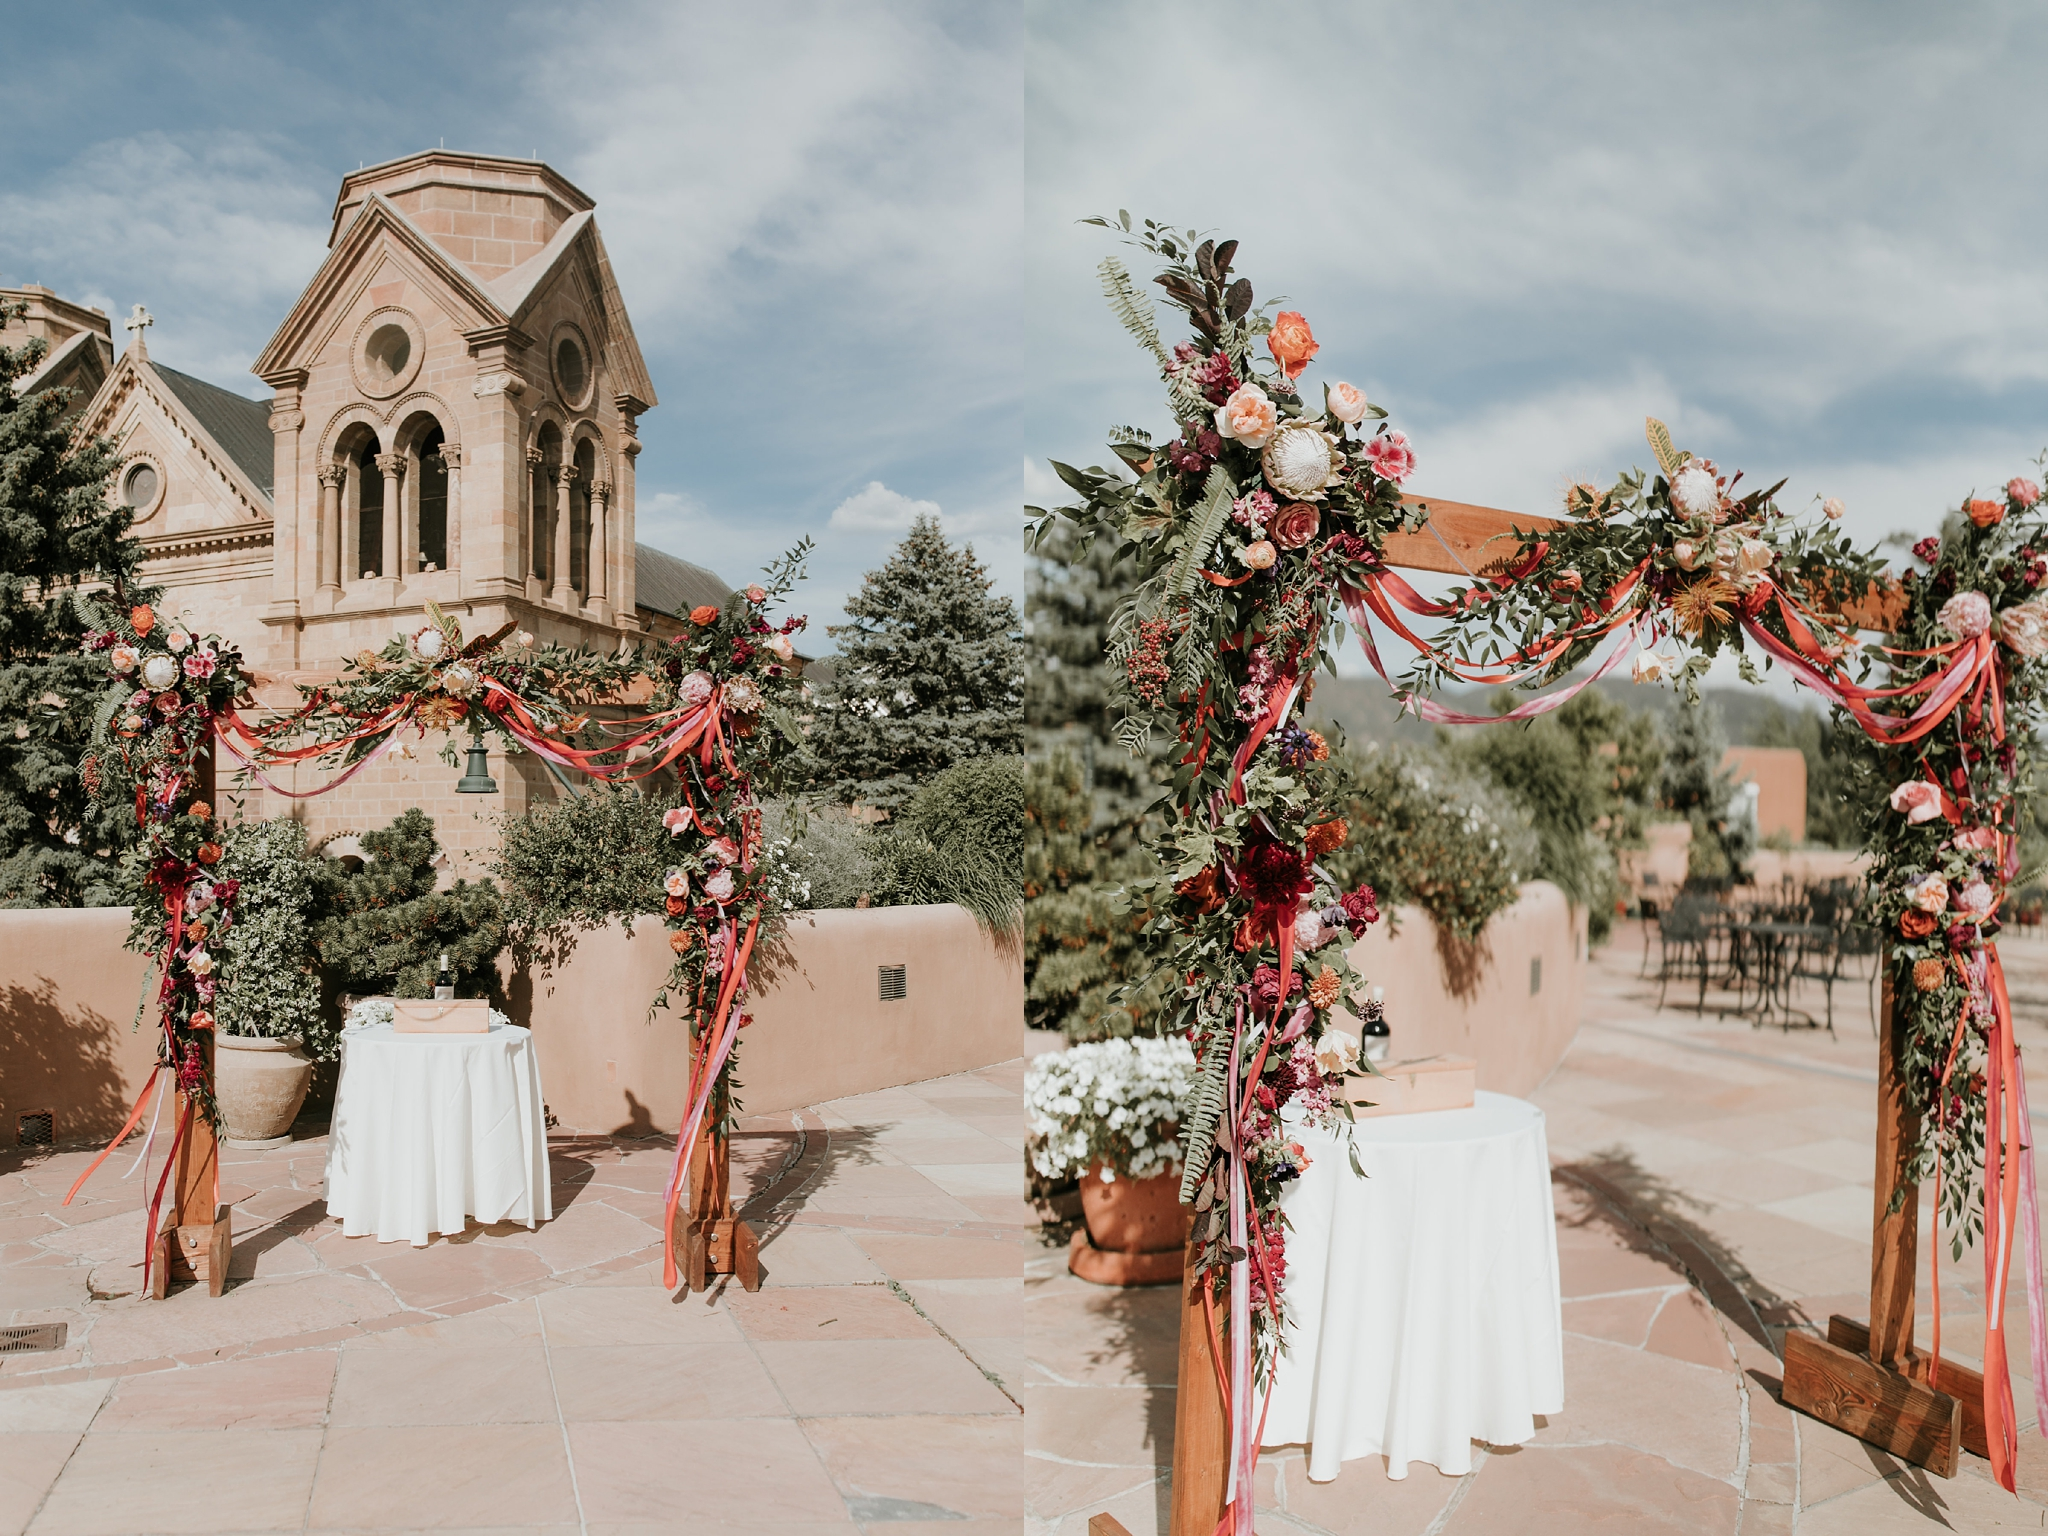 Alicia+lucia+photography+-+albuquerque+wedding+photographer+-+santa+fe+wedding+photography+-+new+mexico+wedding+photographer+-+new+mexico+florist+-+wedding+florist+-+renegade+floral_0034.jpg